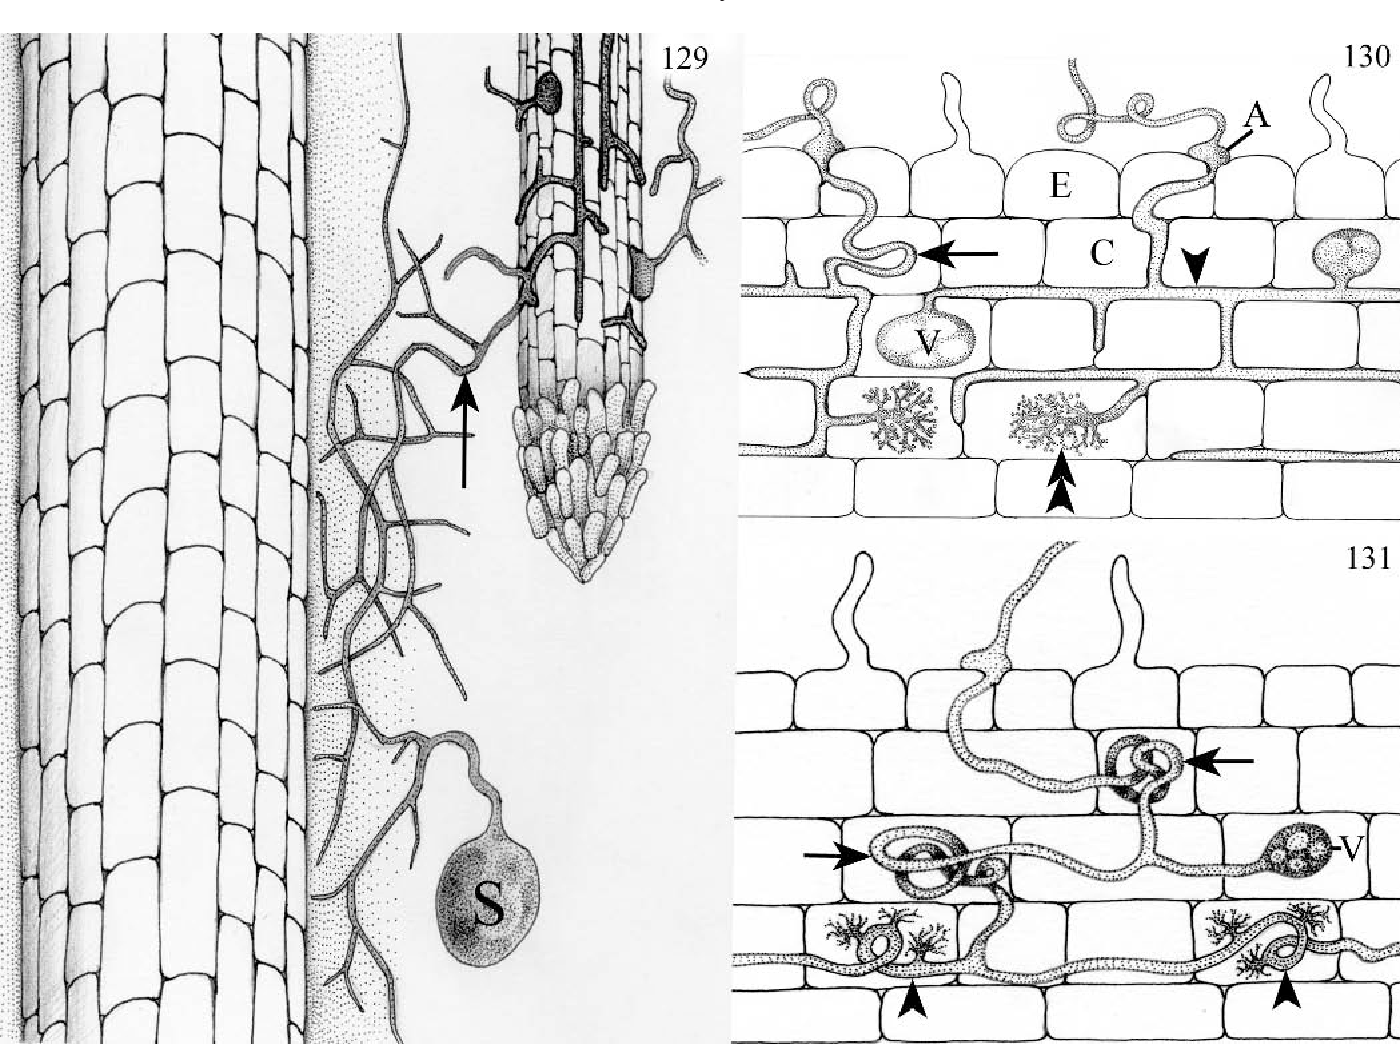 Mycorrhizas: Anatomy and Cell Biology